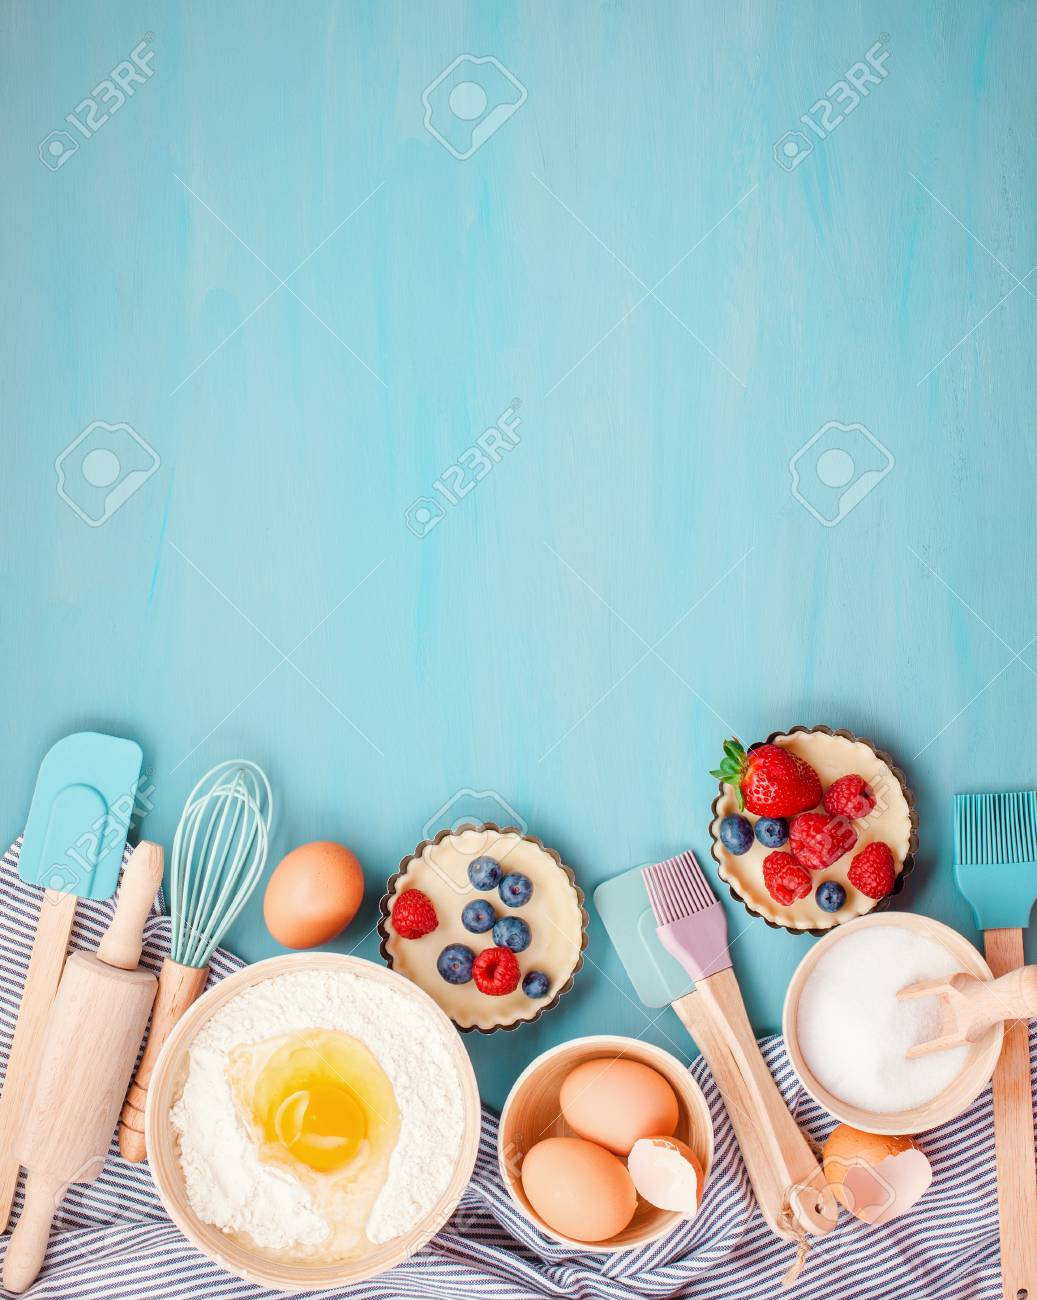 Baking Utensils And Cooking Ingredients For Tarts, Cookies, Dough ...